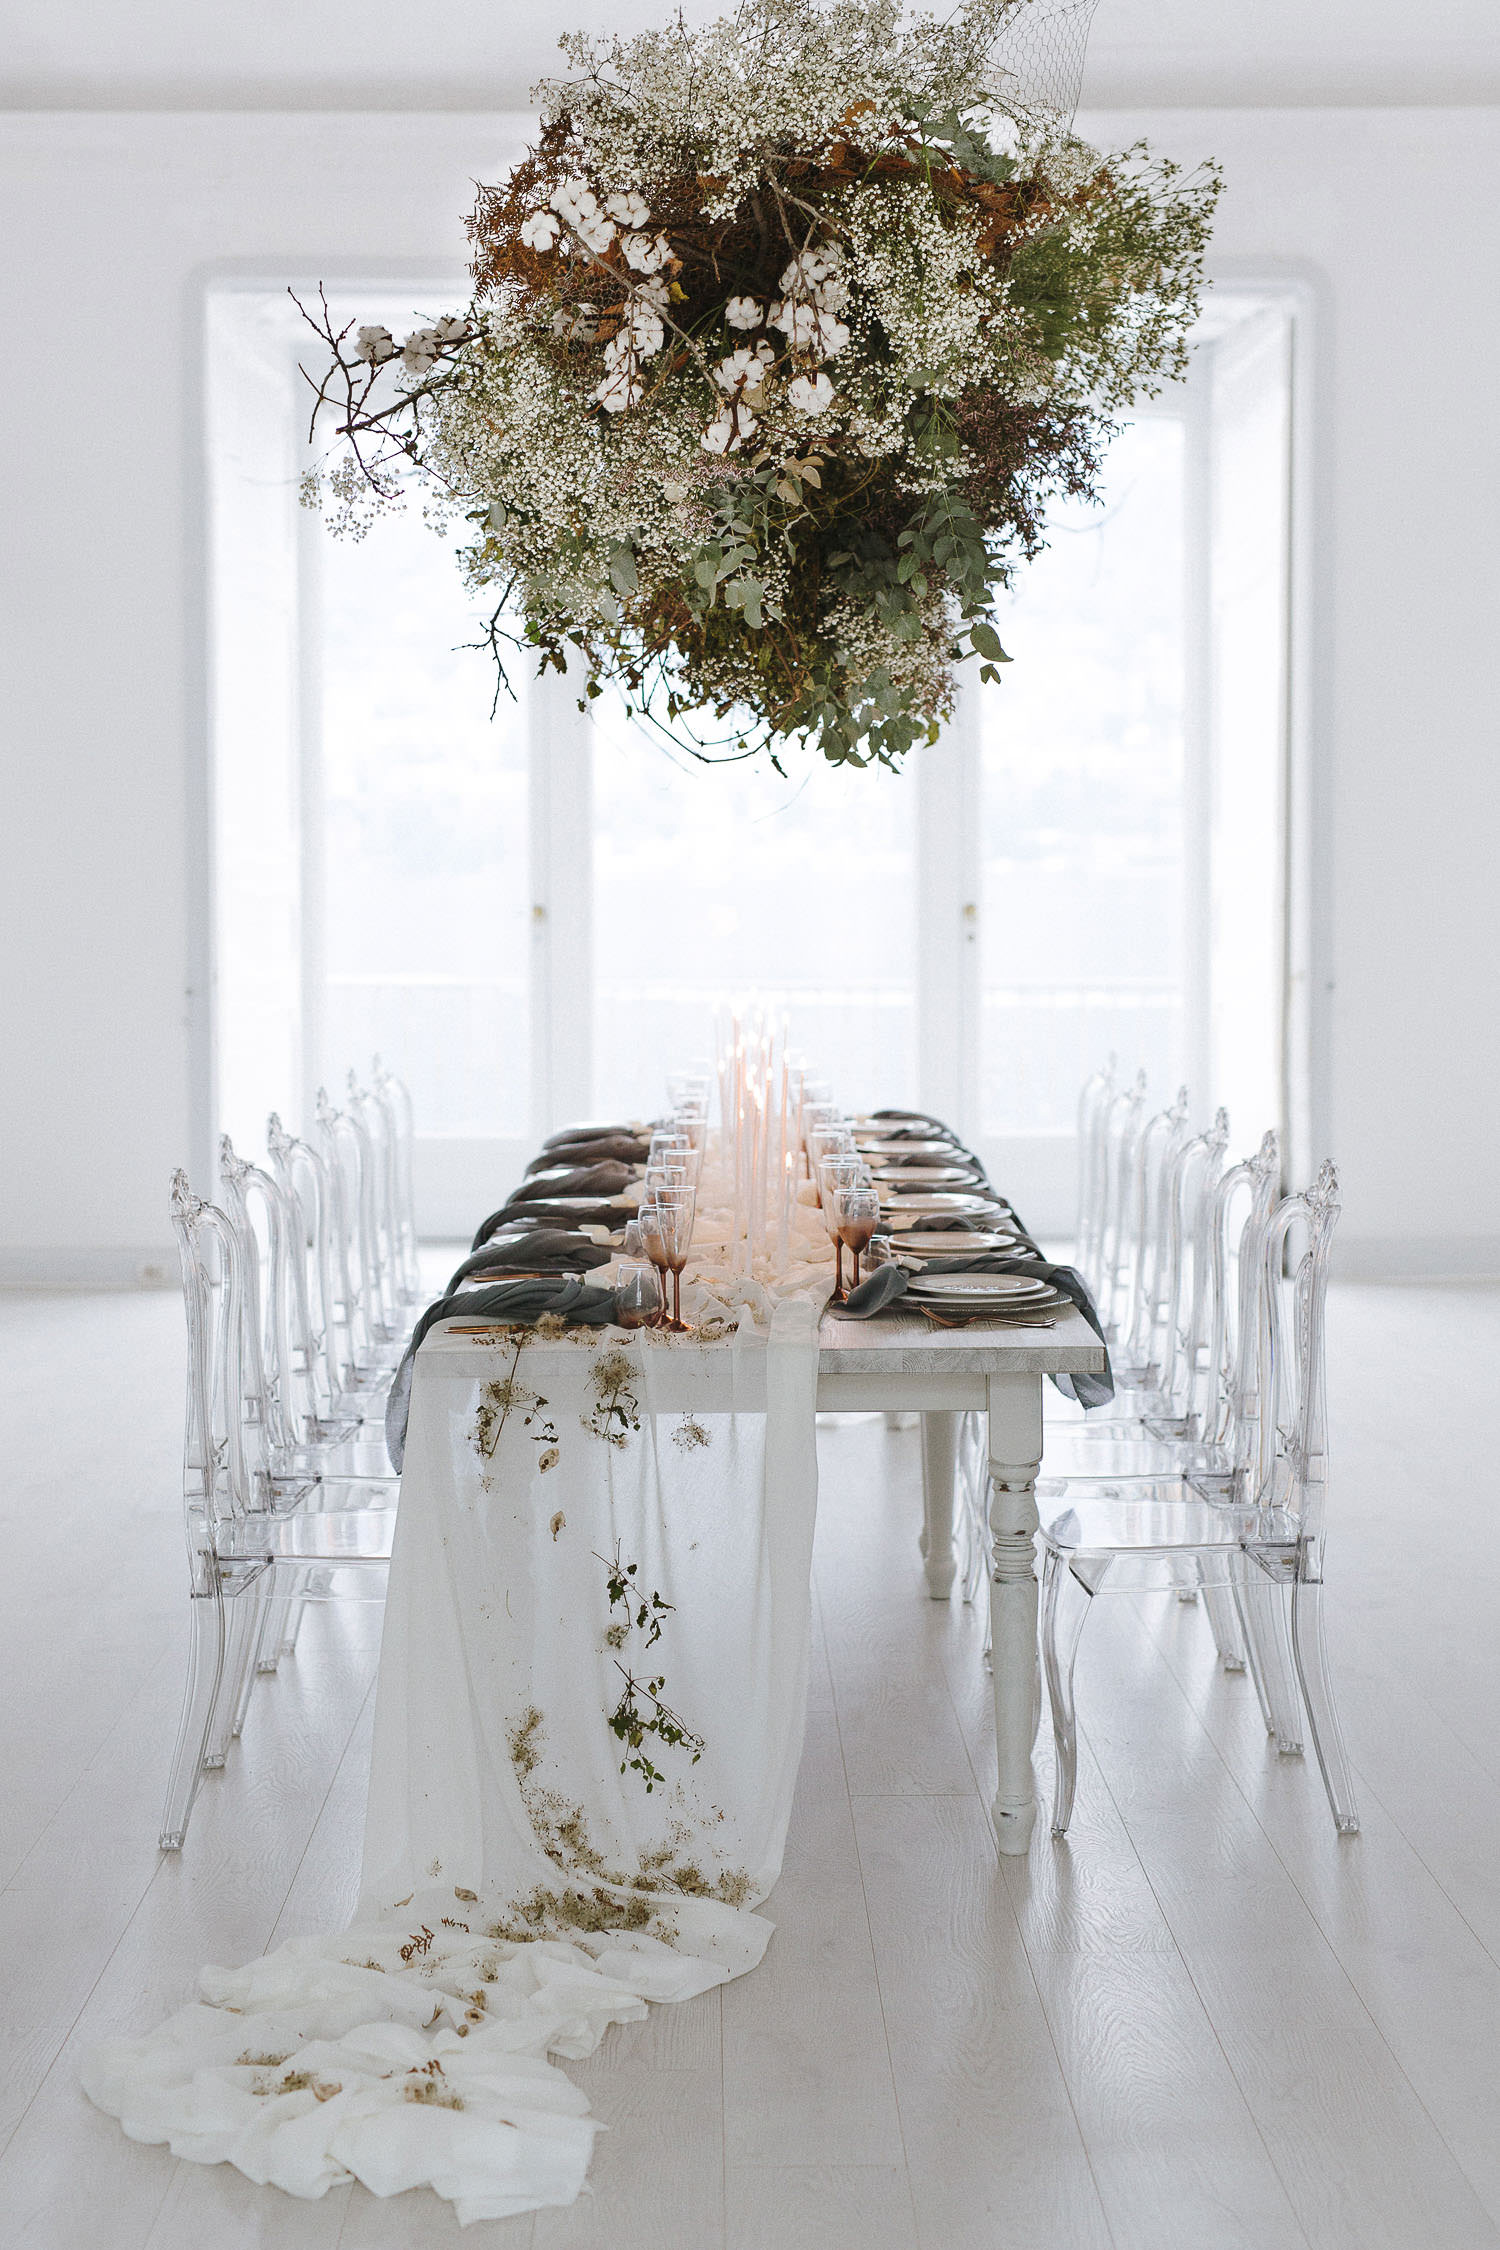 Intimate and refined wedding on Lake Como: stunning hanging floral decor for a wedding in Villa Bianca Stucchi, Cernobbio. Photo: Camilla Anchisi - Lake Como wedding photographer